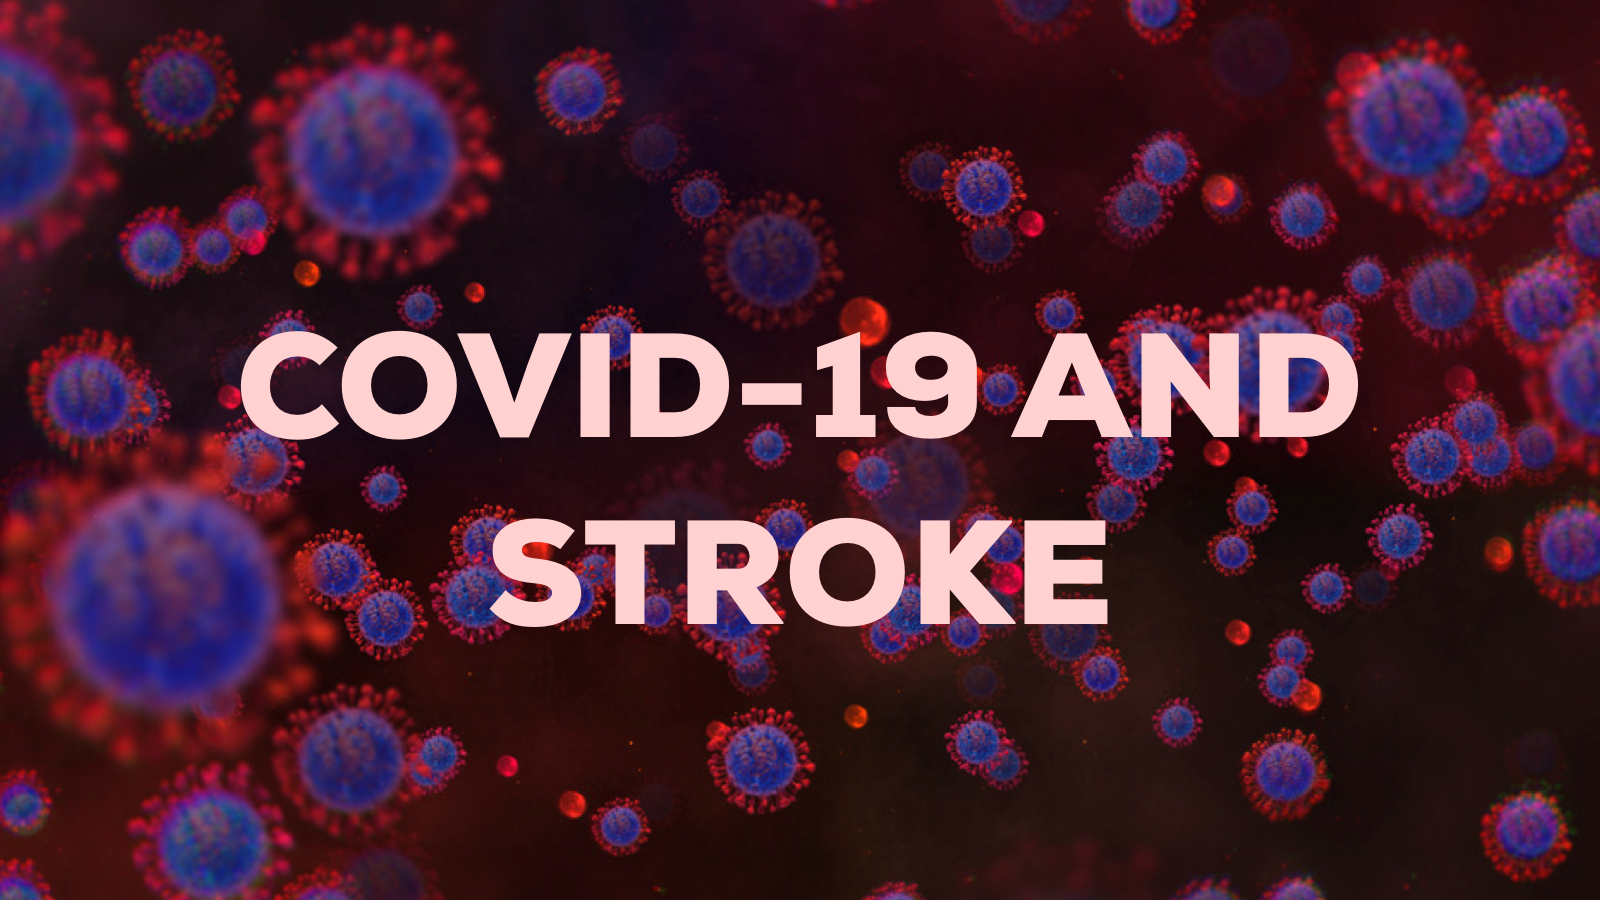 COVID-19 and Stroke in Young Adults: Know the Signs to Save a Life